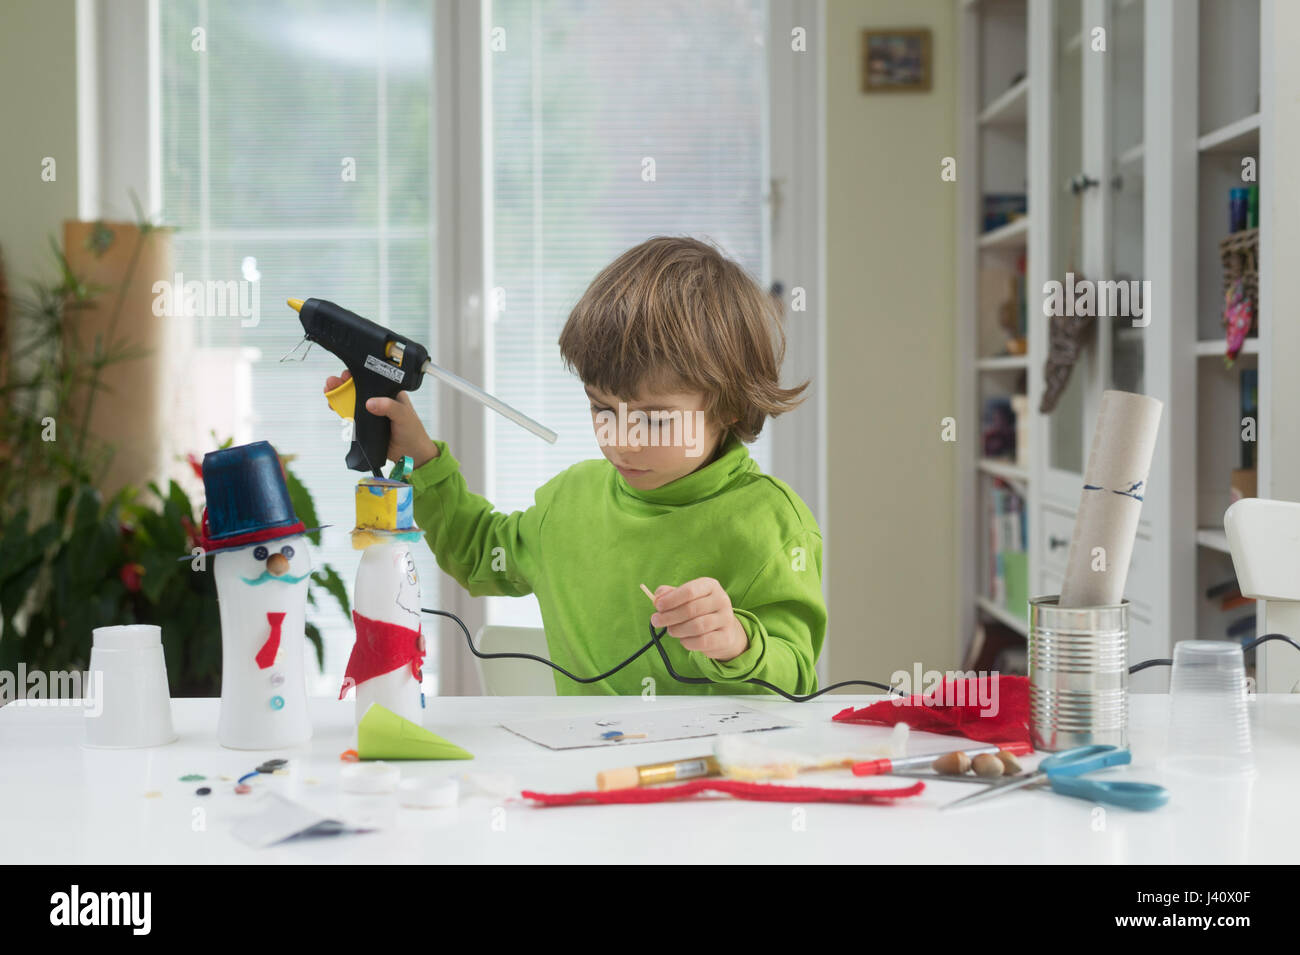 Little boy being creative making homemade do it yourself toys out of little boy being creative making homemade do it yourself toys out of yogurt bottle and paper using hot melt glue gun supporting creativity learning solutioingenieria Images